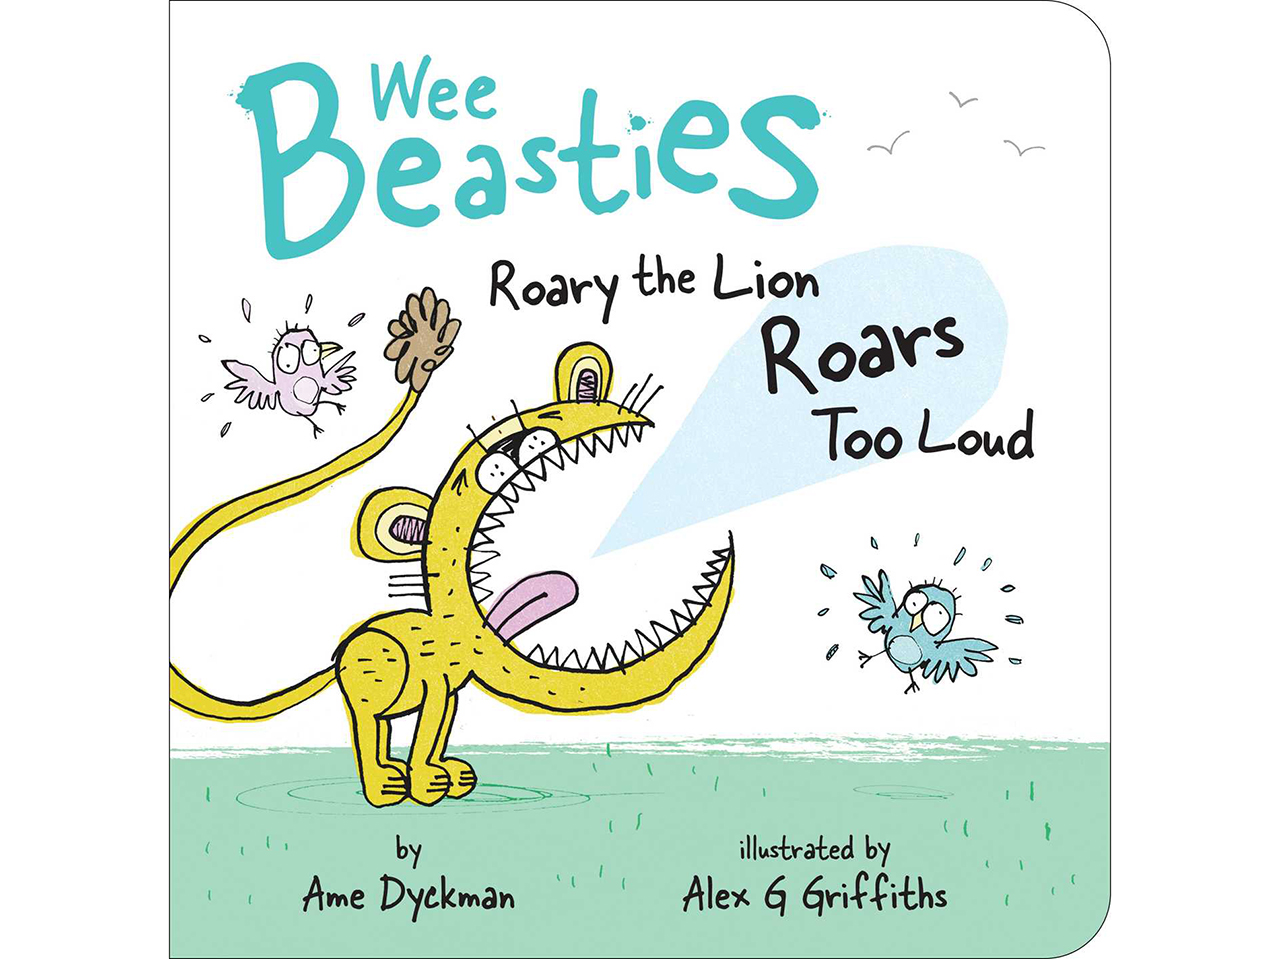 Roary the Lion Roars Too Loud book cover